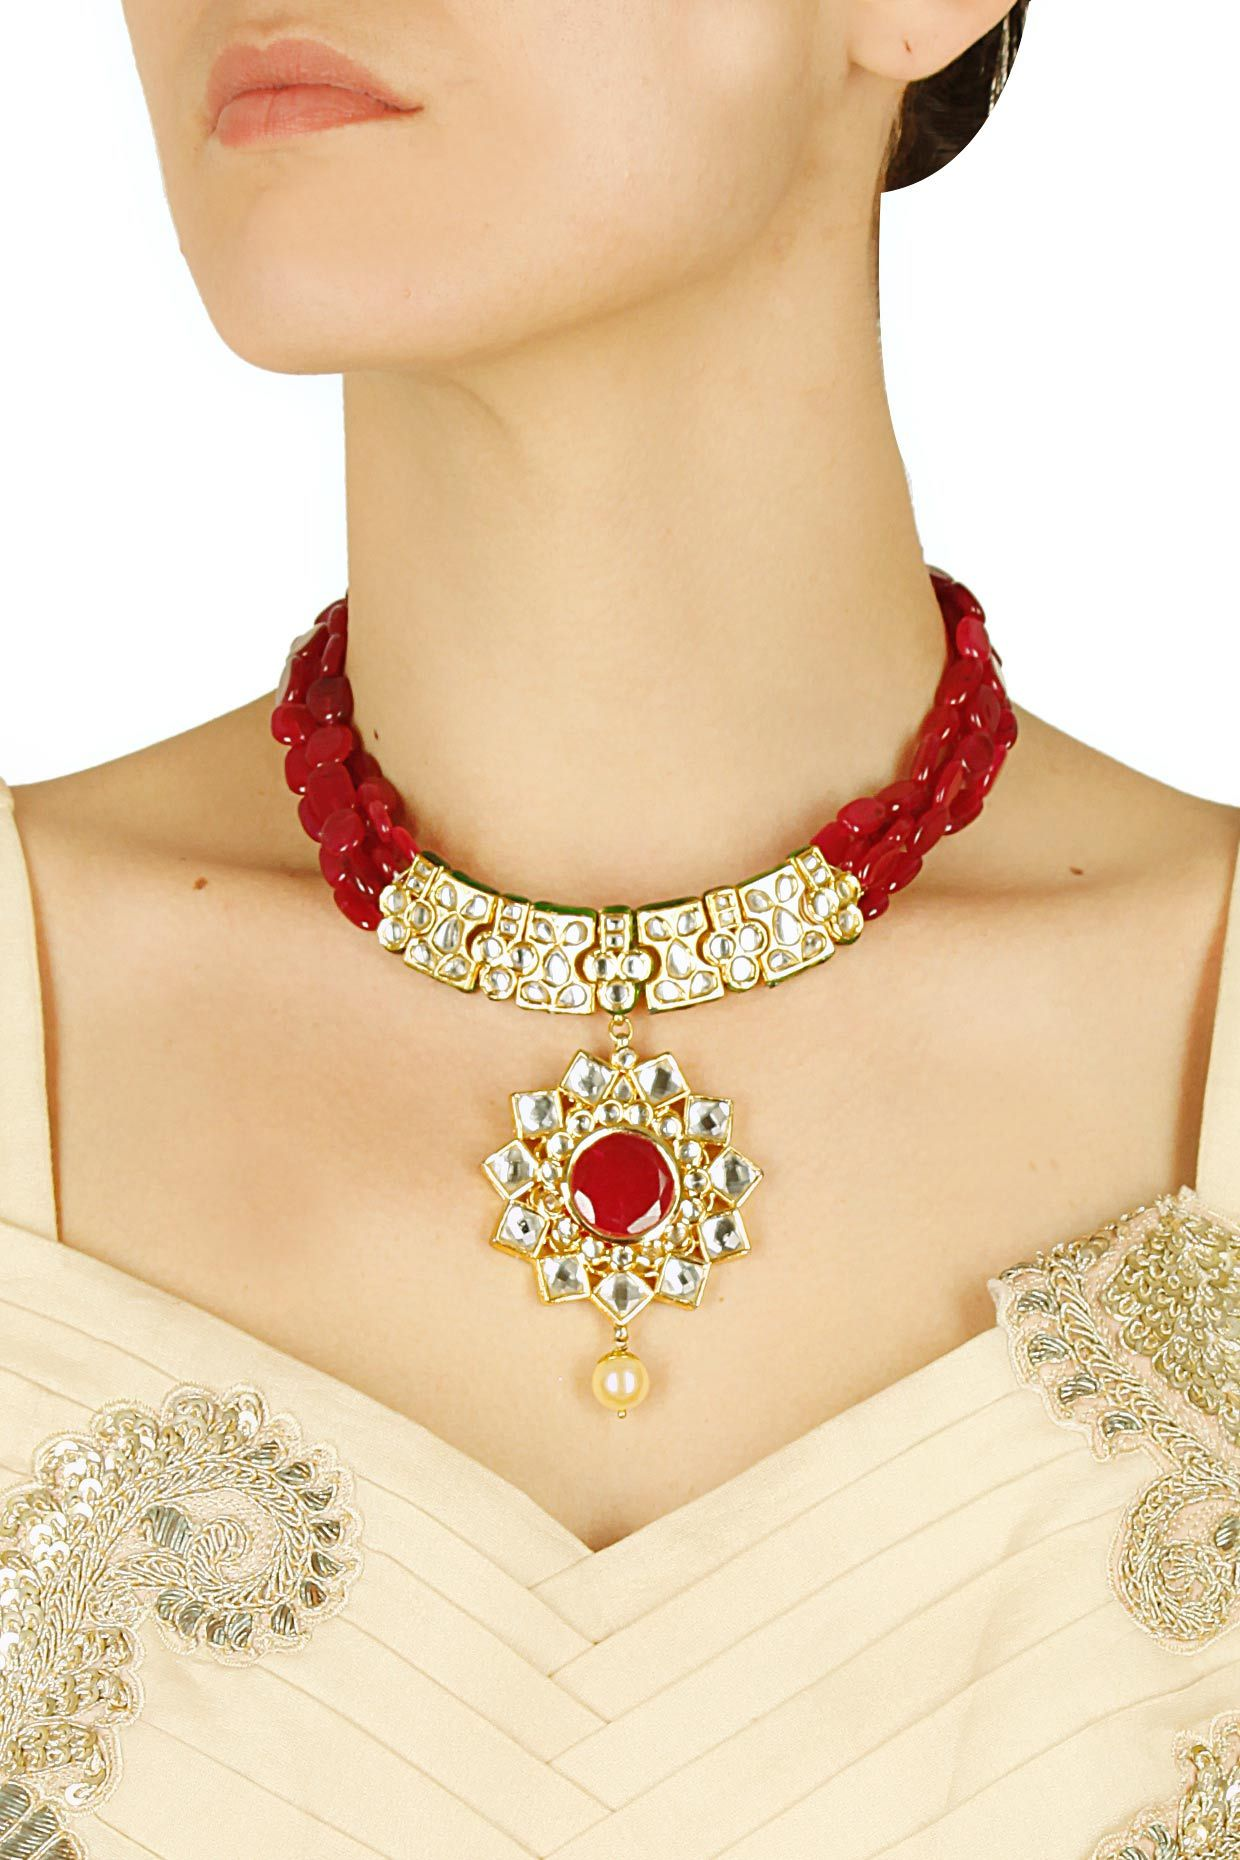 Gold finish multilayer kundan and red quartz stone necklace available only at Pernia's Pop Up Shop. .#perniaspopupshop #shopnow #newcollection ##happyshopping #accessories #anajalijain